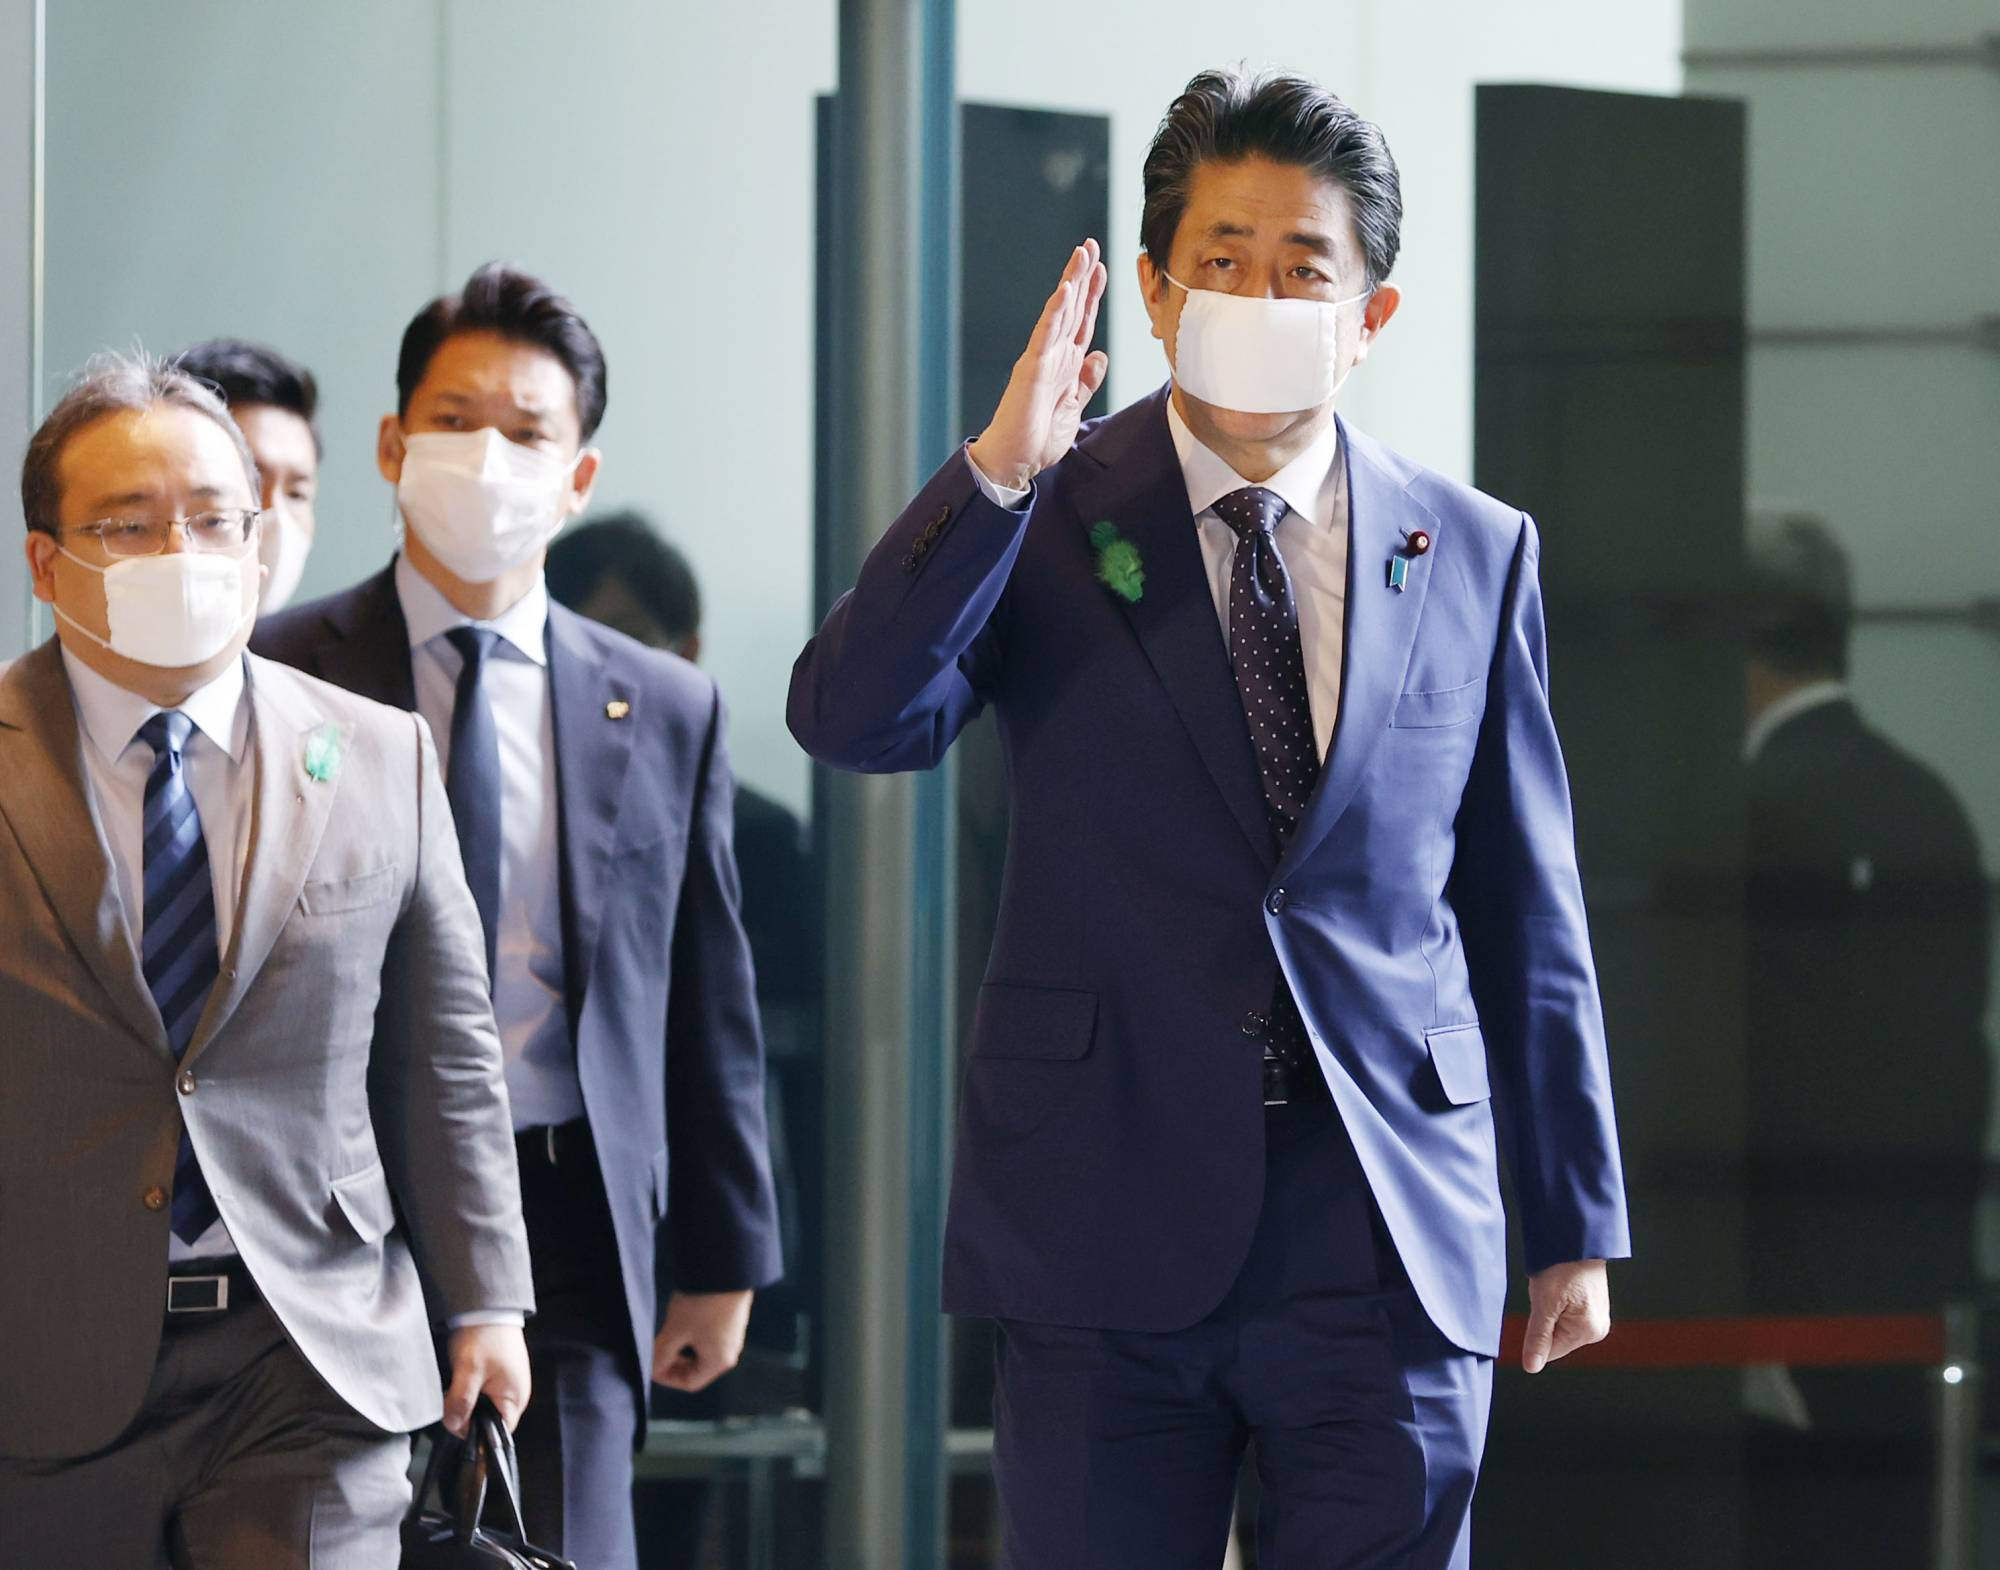 Prime Minister Shinzo Abe is now likely to revise a supplementary budget to distribute ¥100,000 to each citizen amid the coronavirus outbreak. | KYODO